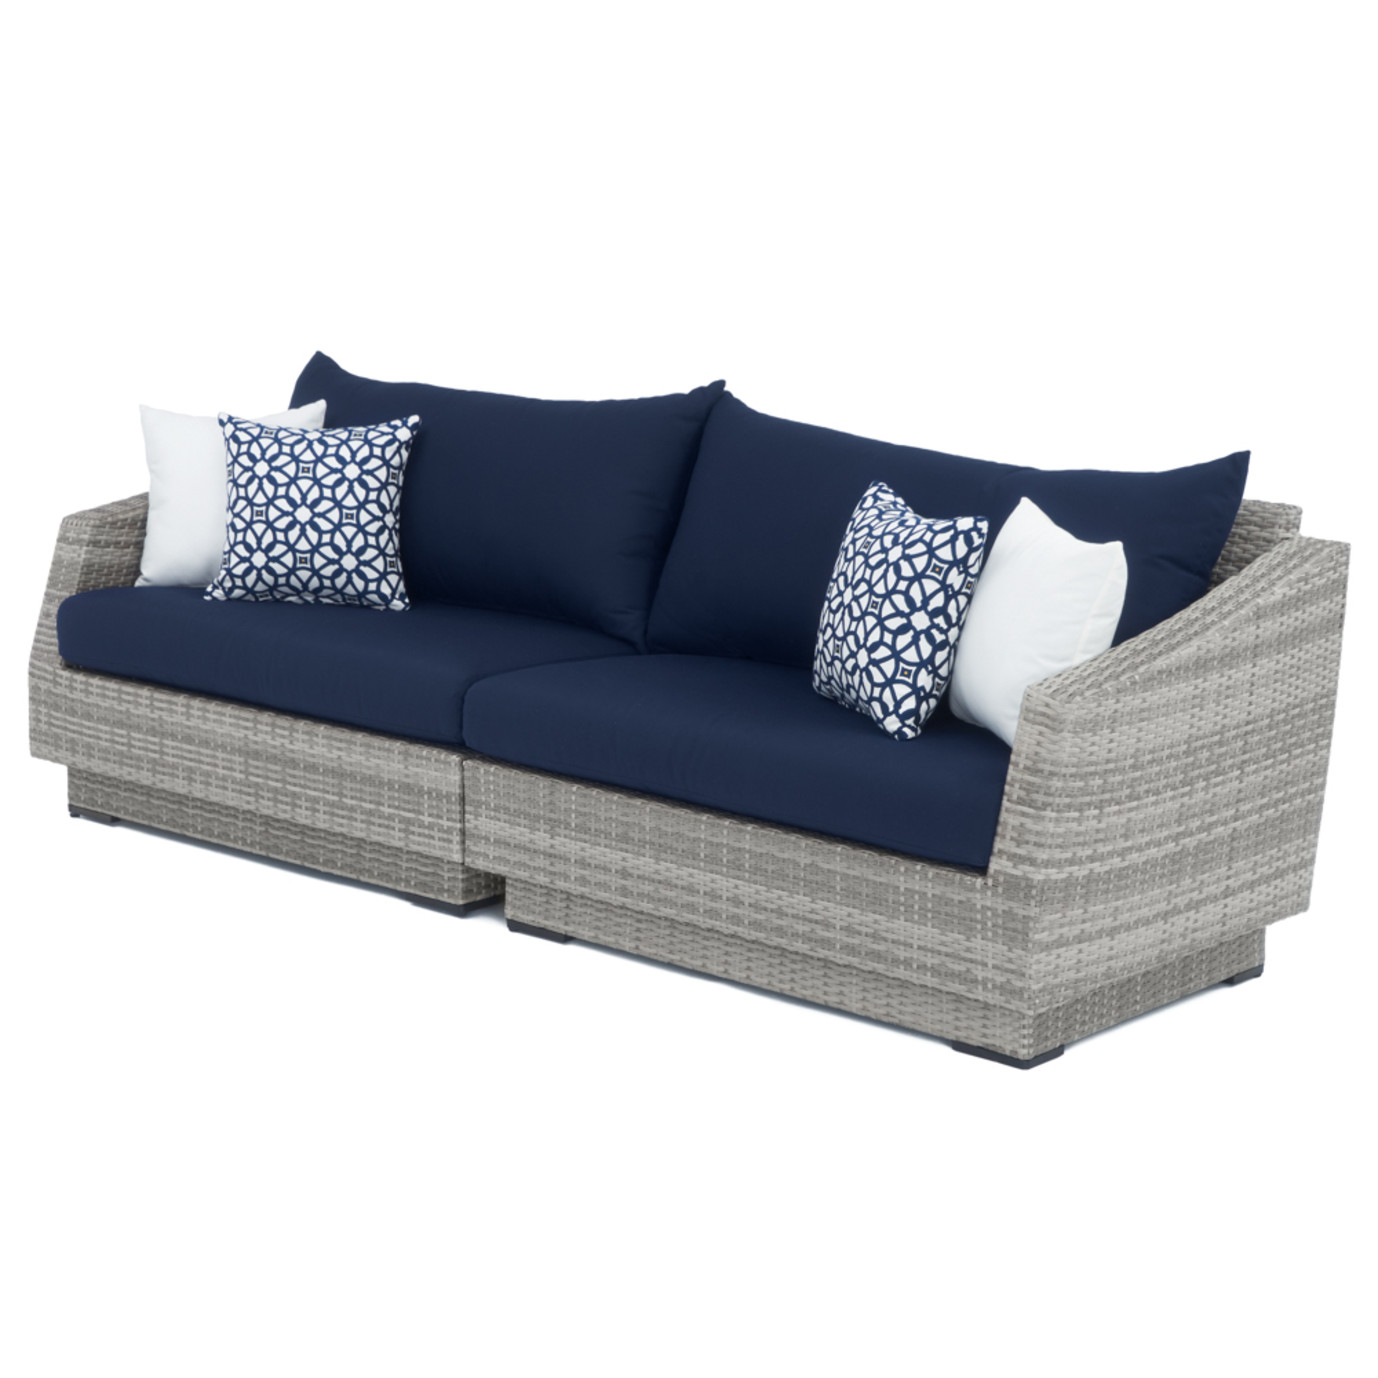 Cannes™ Sofa - Navy Blue